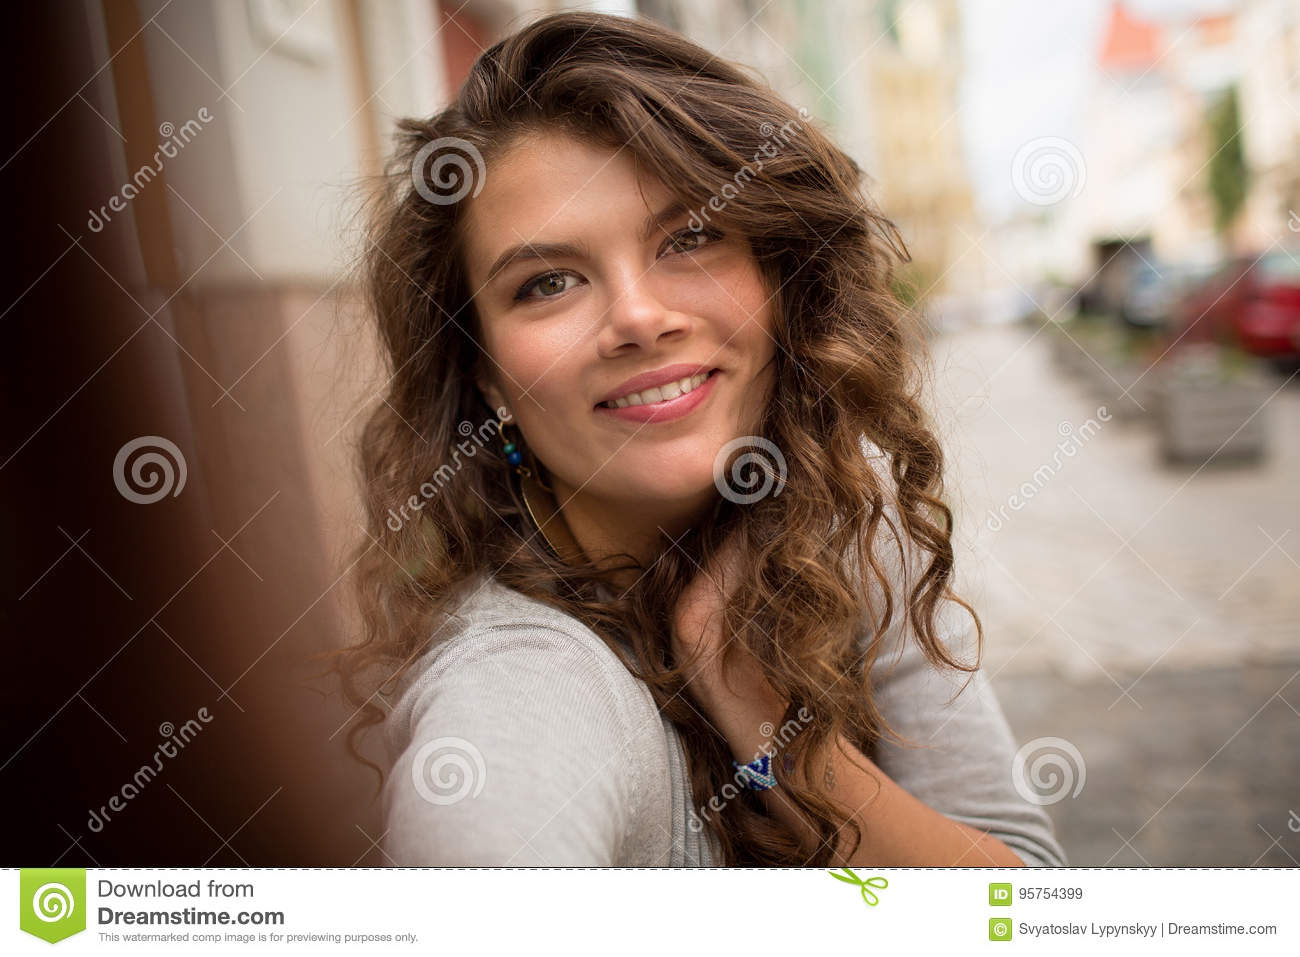 Travel girl taking selfie shot, showing emotions of happiness.